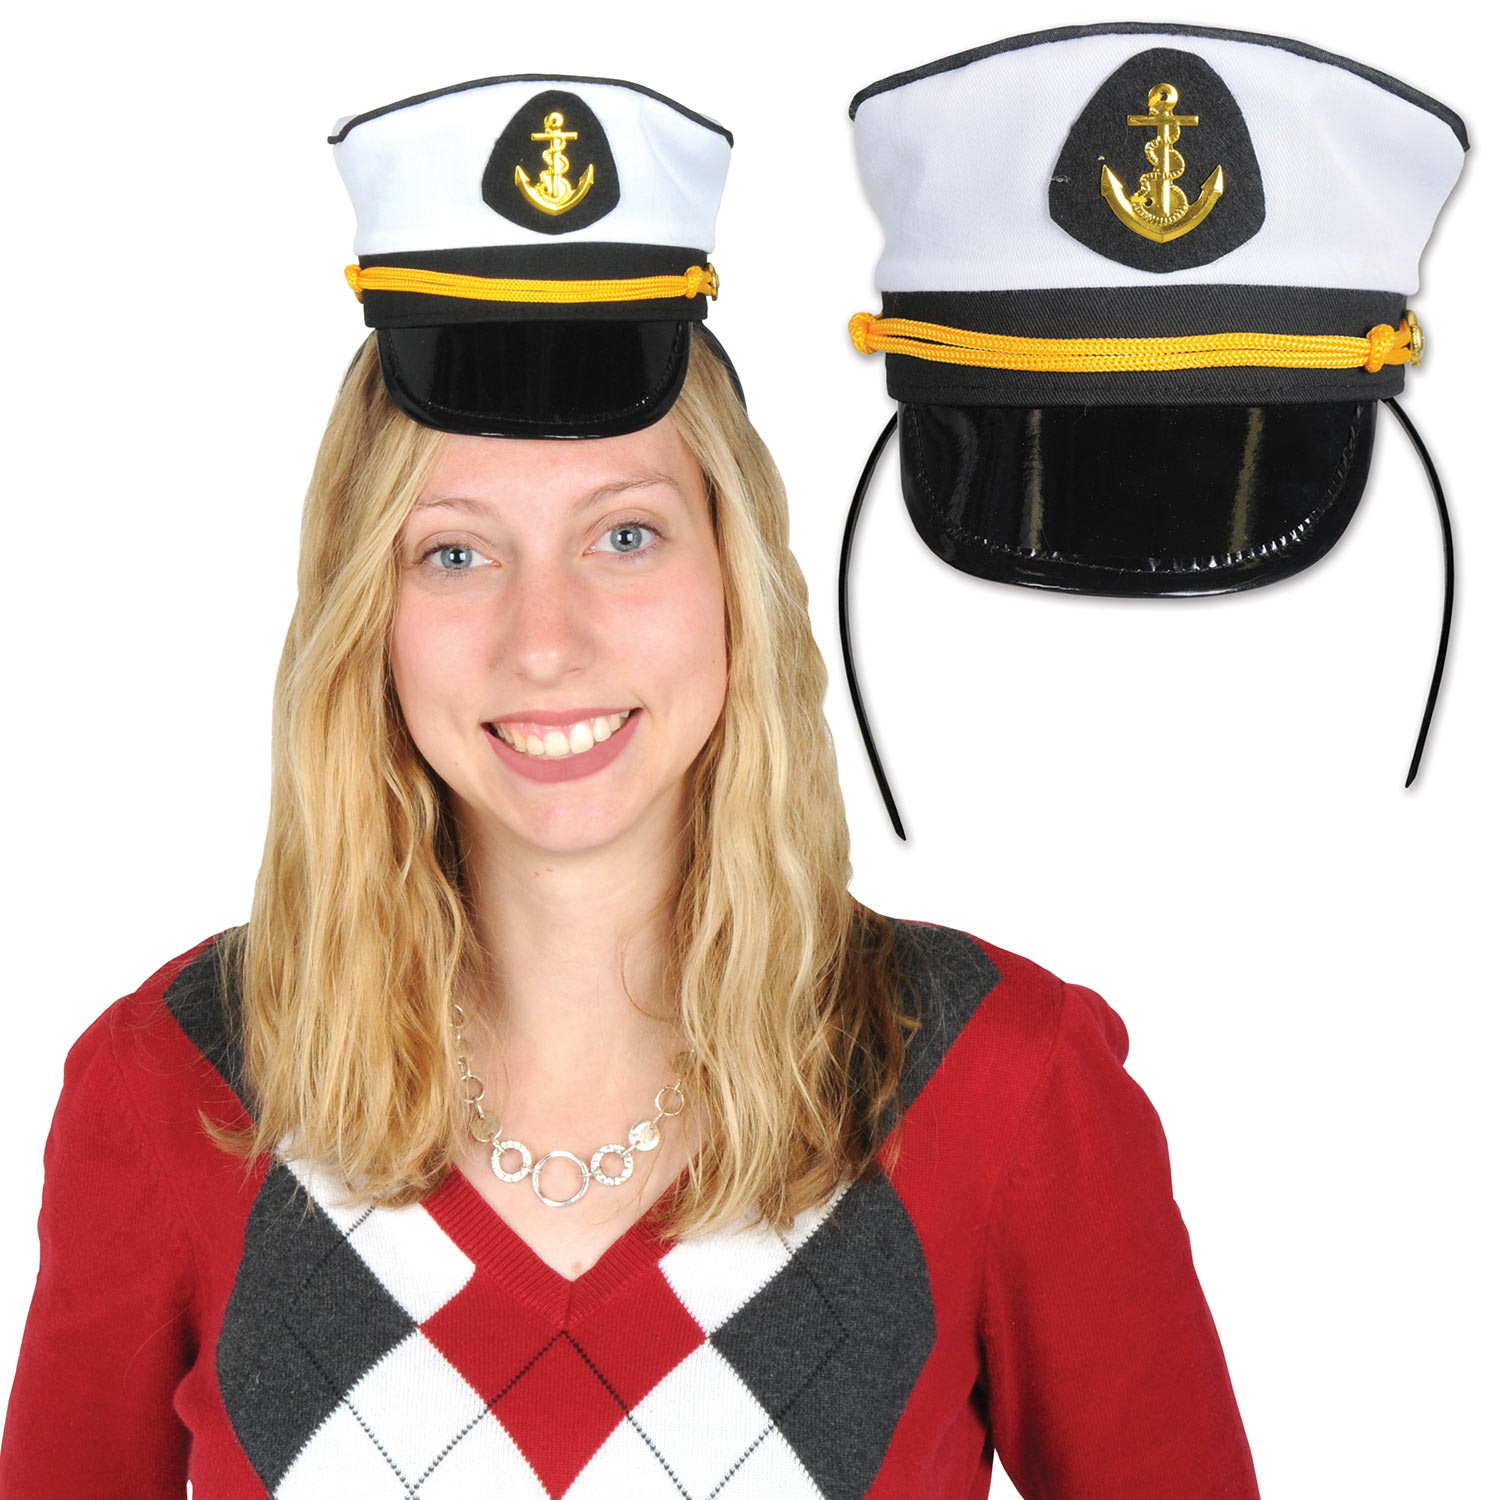 Headband with an attachment that replicates a yacht captains hat.